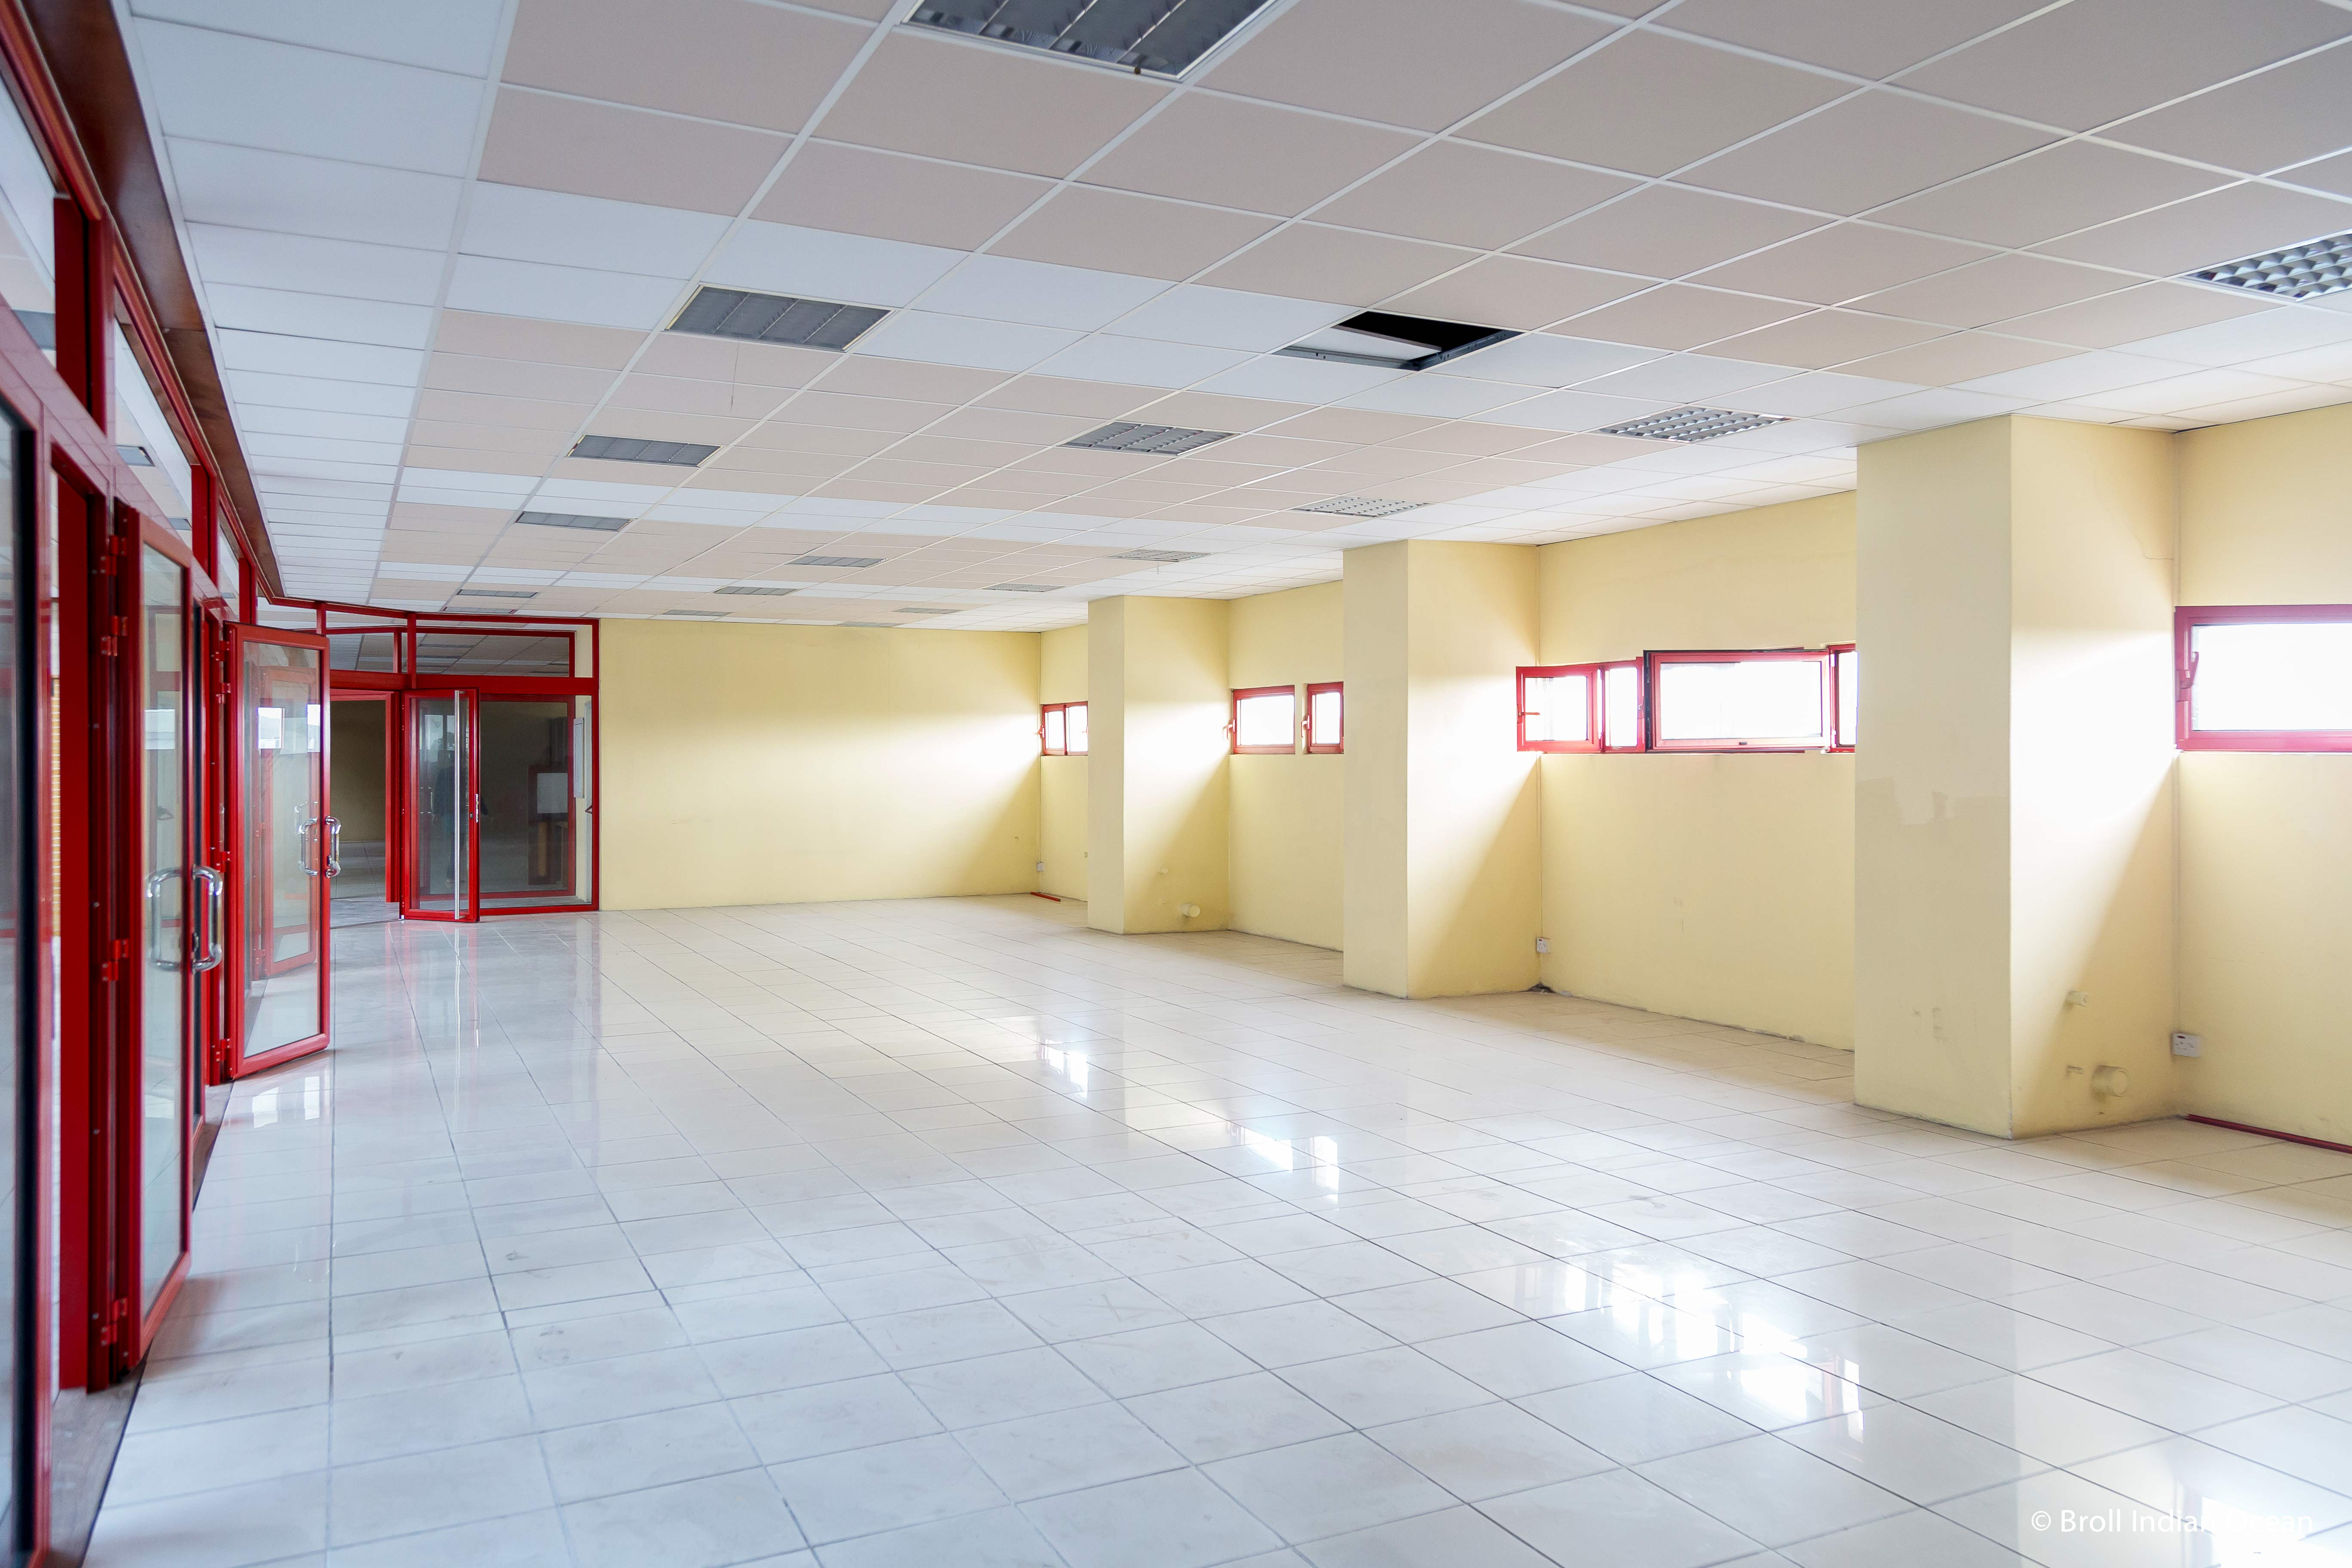 Commercial space available for rent at Sunsheel Shopping Centre - Royal Road Curepipe.